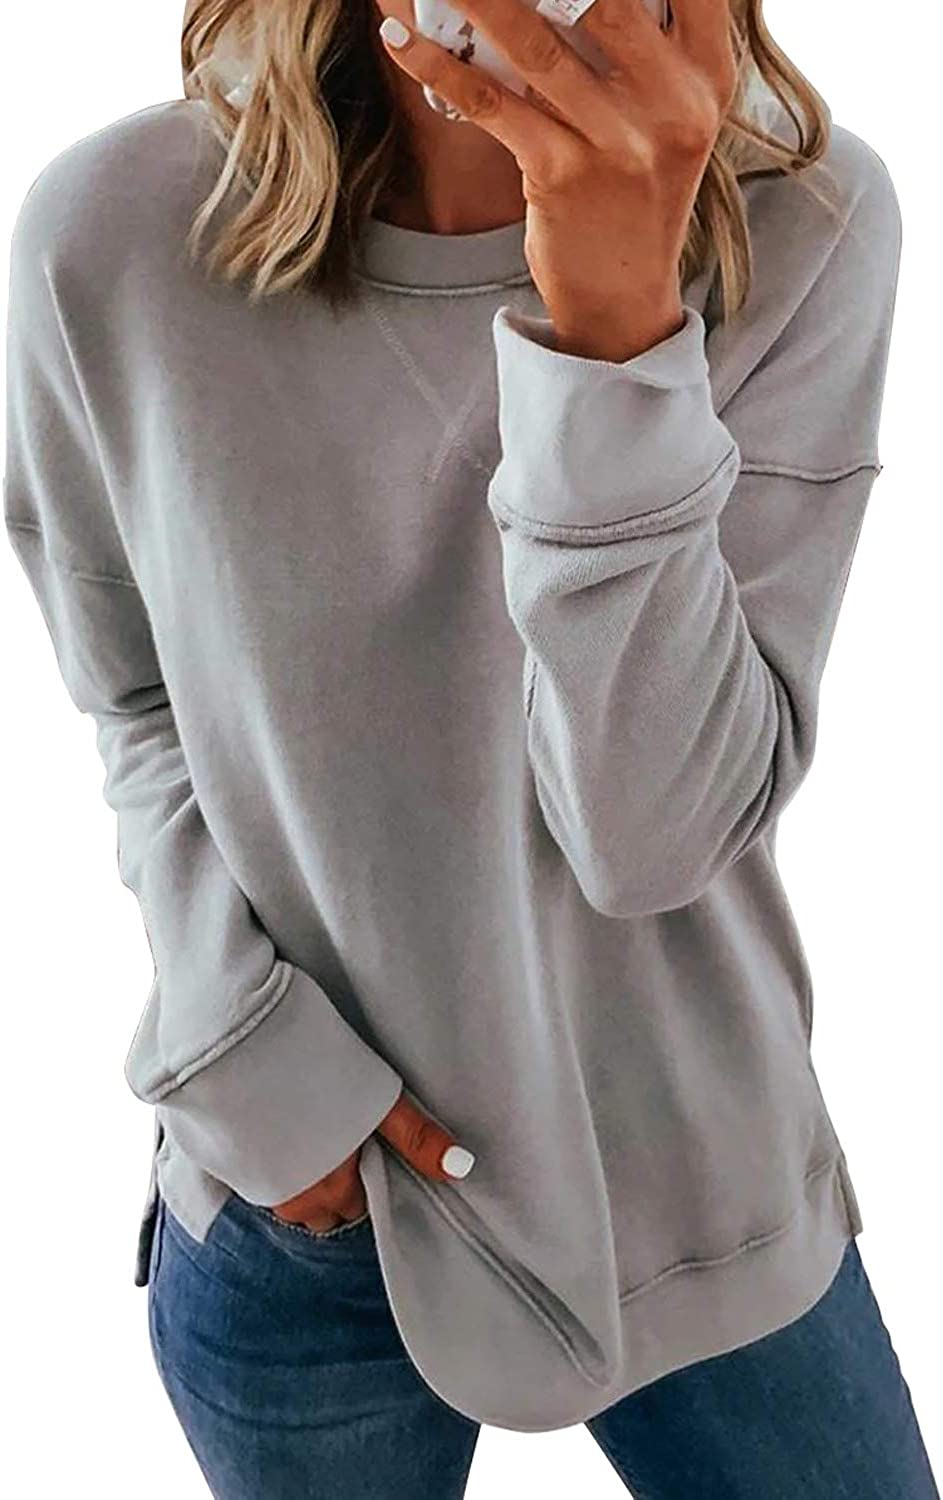 Womens Sweatshirts Pullover Long Sleeve Crewneck Shirts Loose Fit Casual Blouse Tops